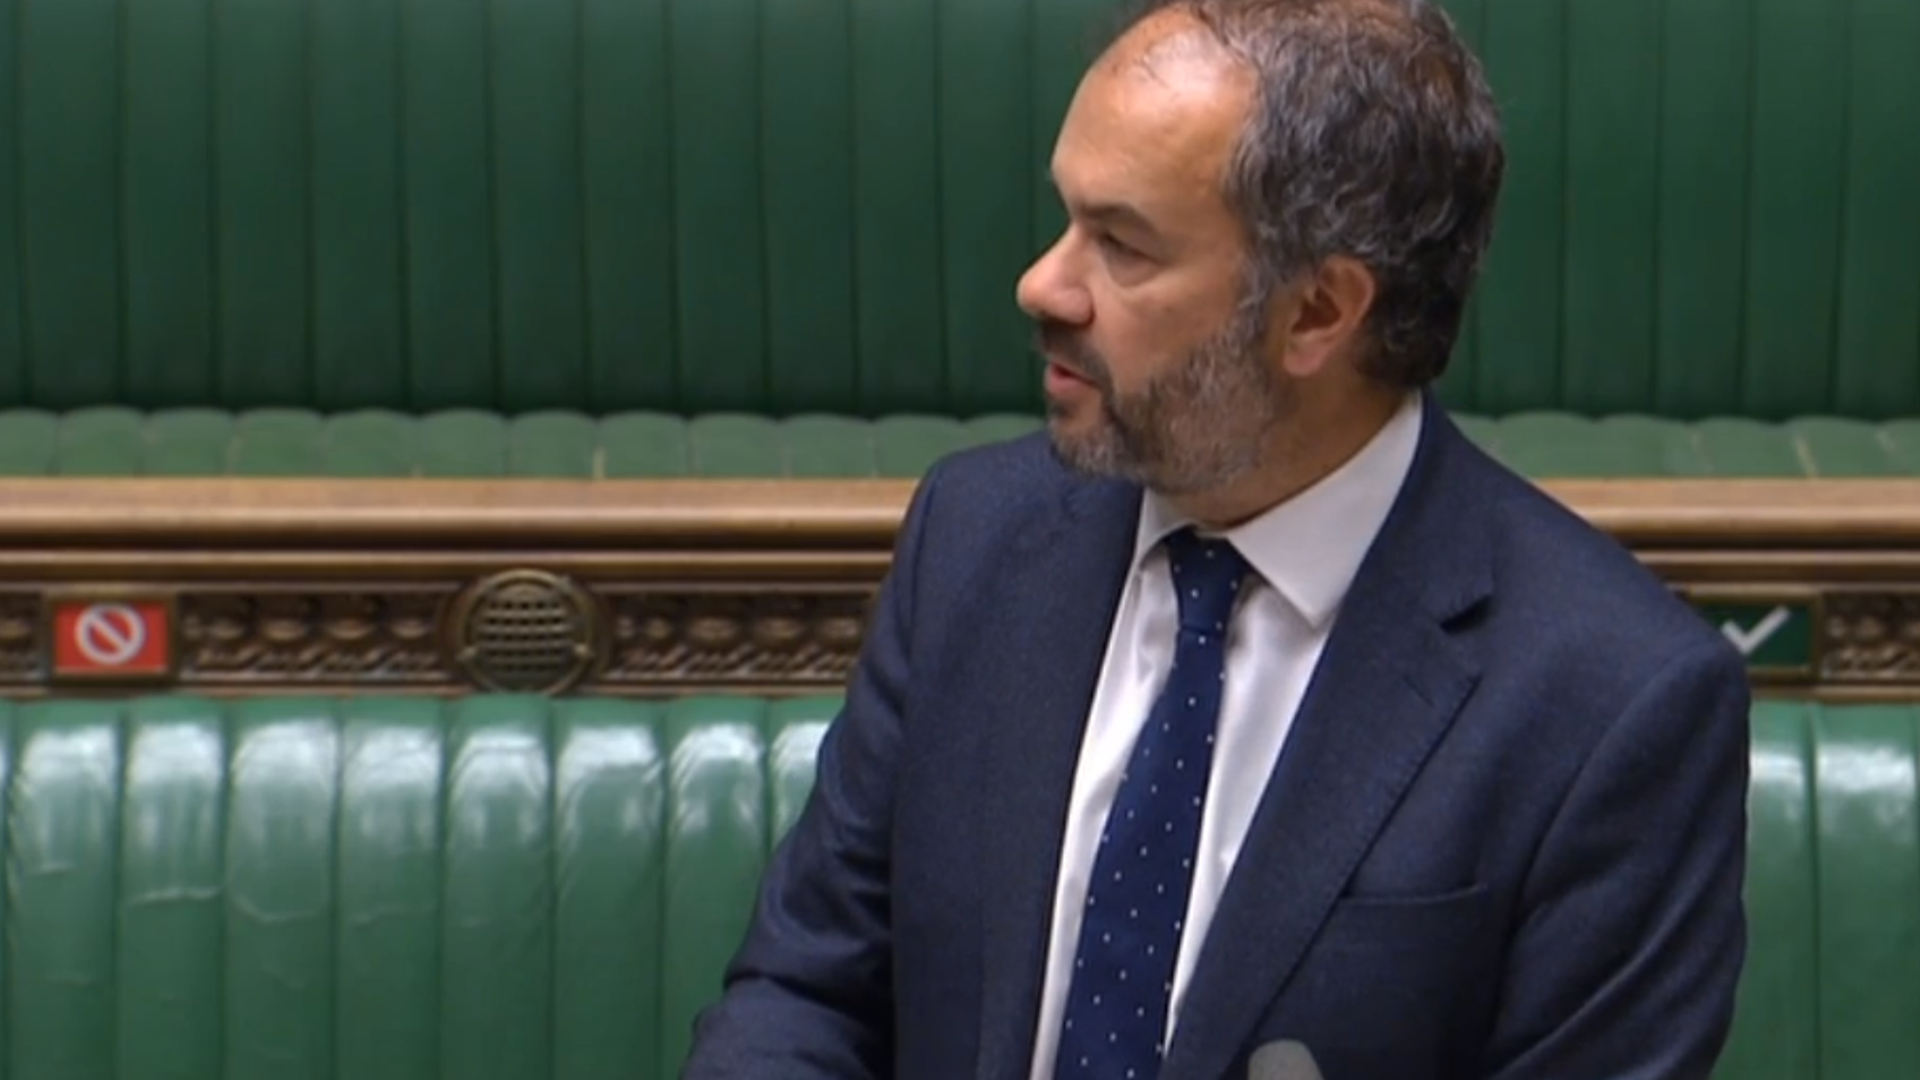 Paul Scully in the House of Commons - Credit: Parliament Live